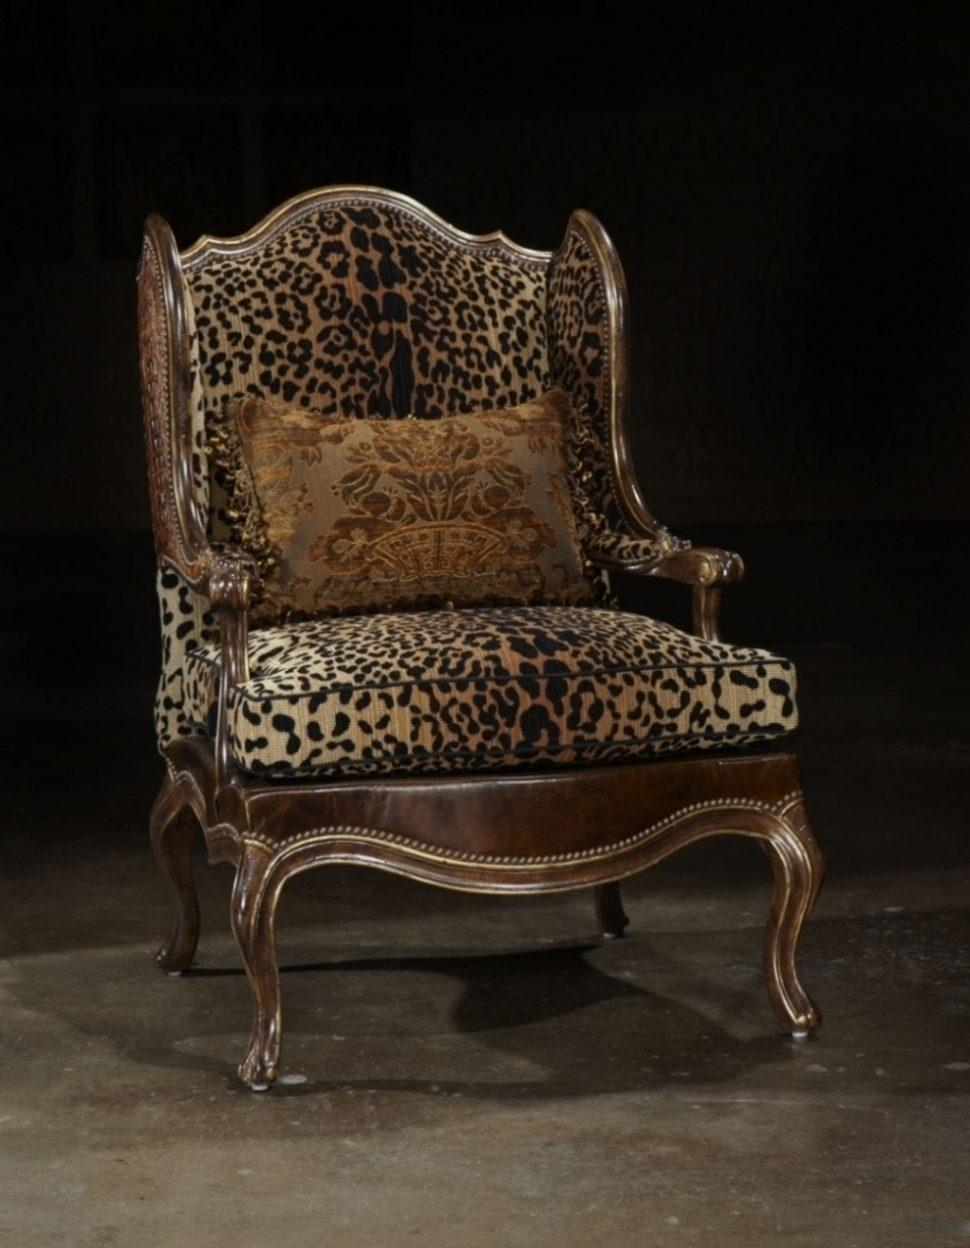 Sofas Center : Animal Print Sofa Amazing Leopard Accent Chair Within Animal Print Sofas (View 3 of 20)